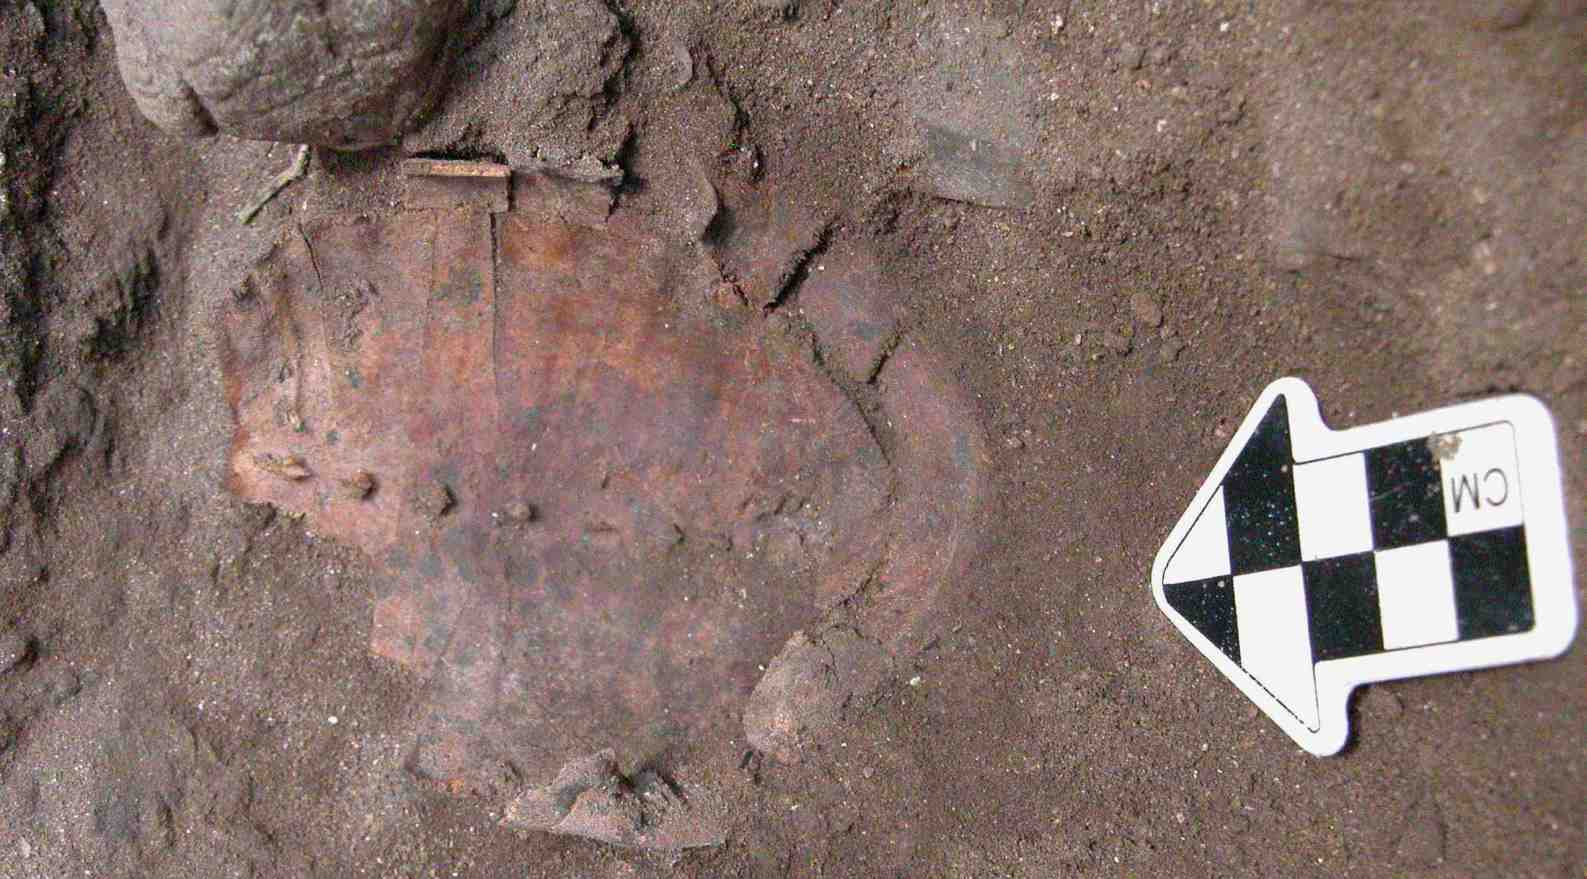 One of 86 tortoise shells found in a unique burial site analyzed by Hebrew University archaeologists. Photo by Leore Grosman